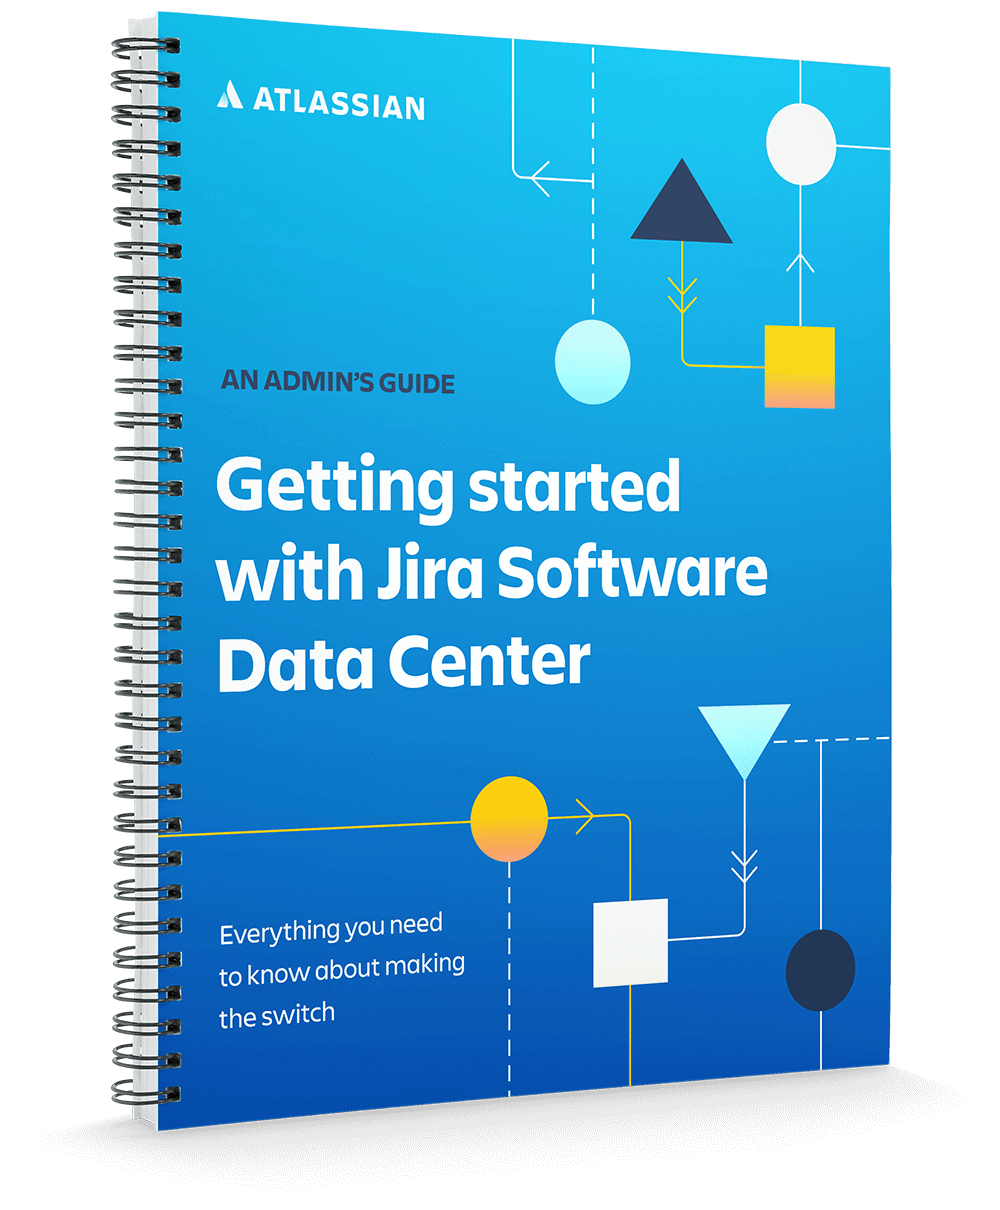 Getting started with Jira Software Data Center cover page